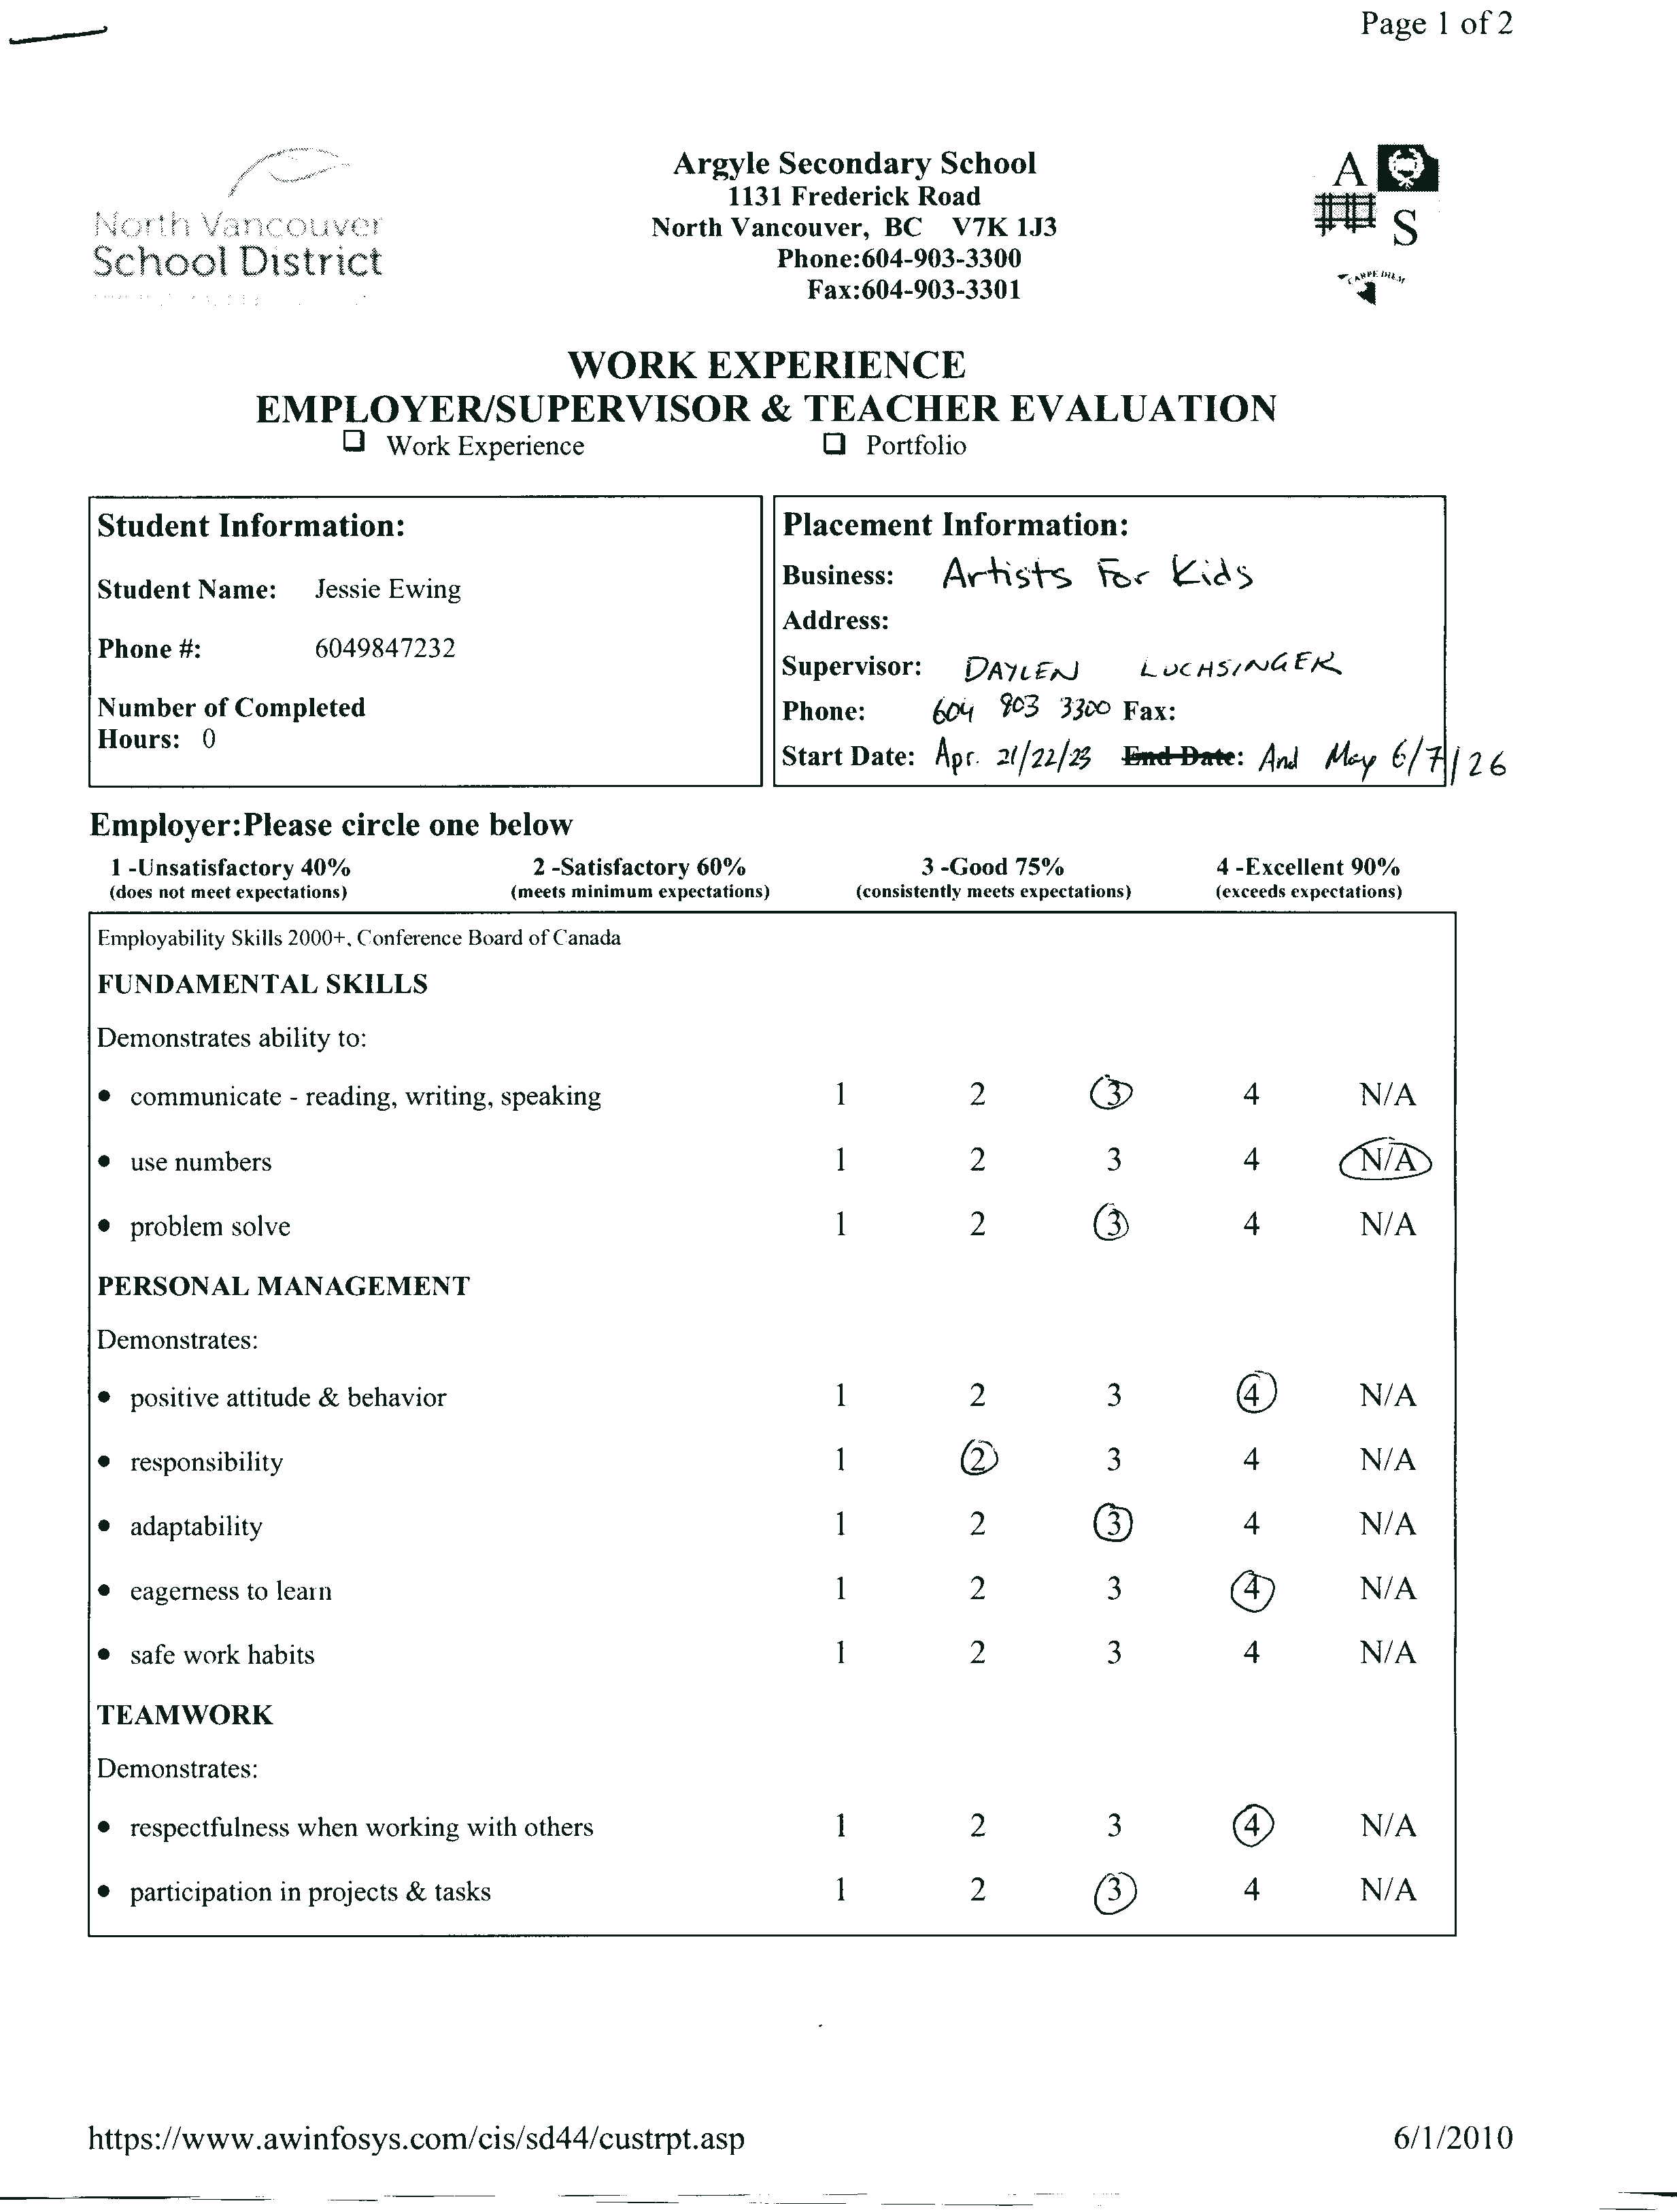 resume evaluation checklist how to make a job resume high school resume evaluation checklist